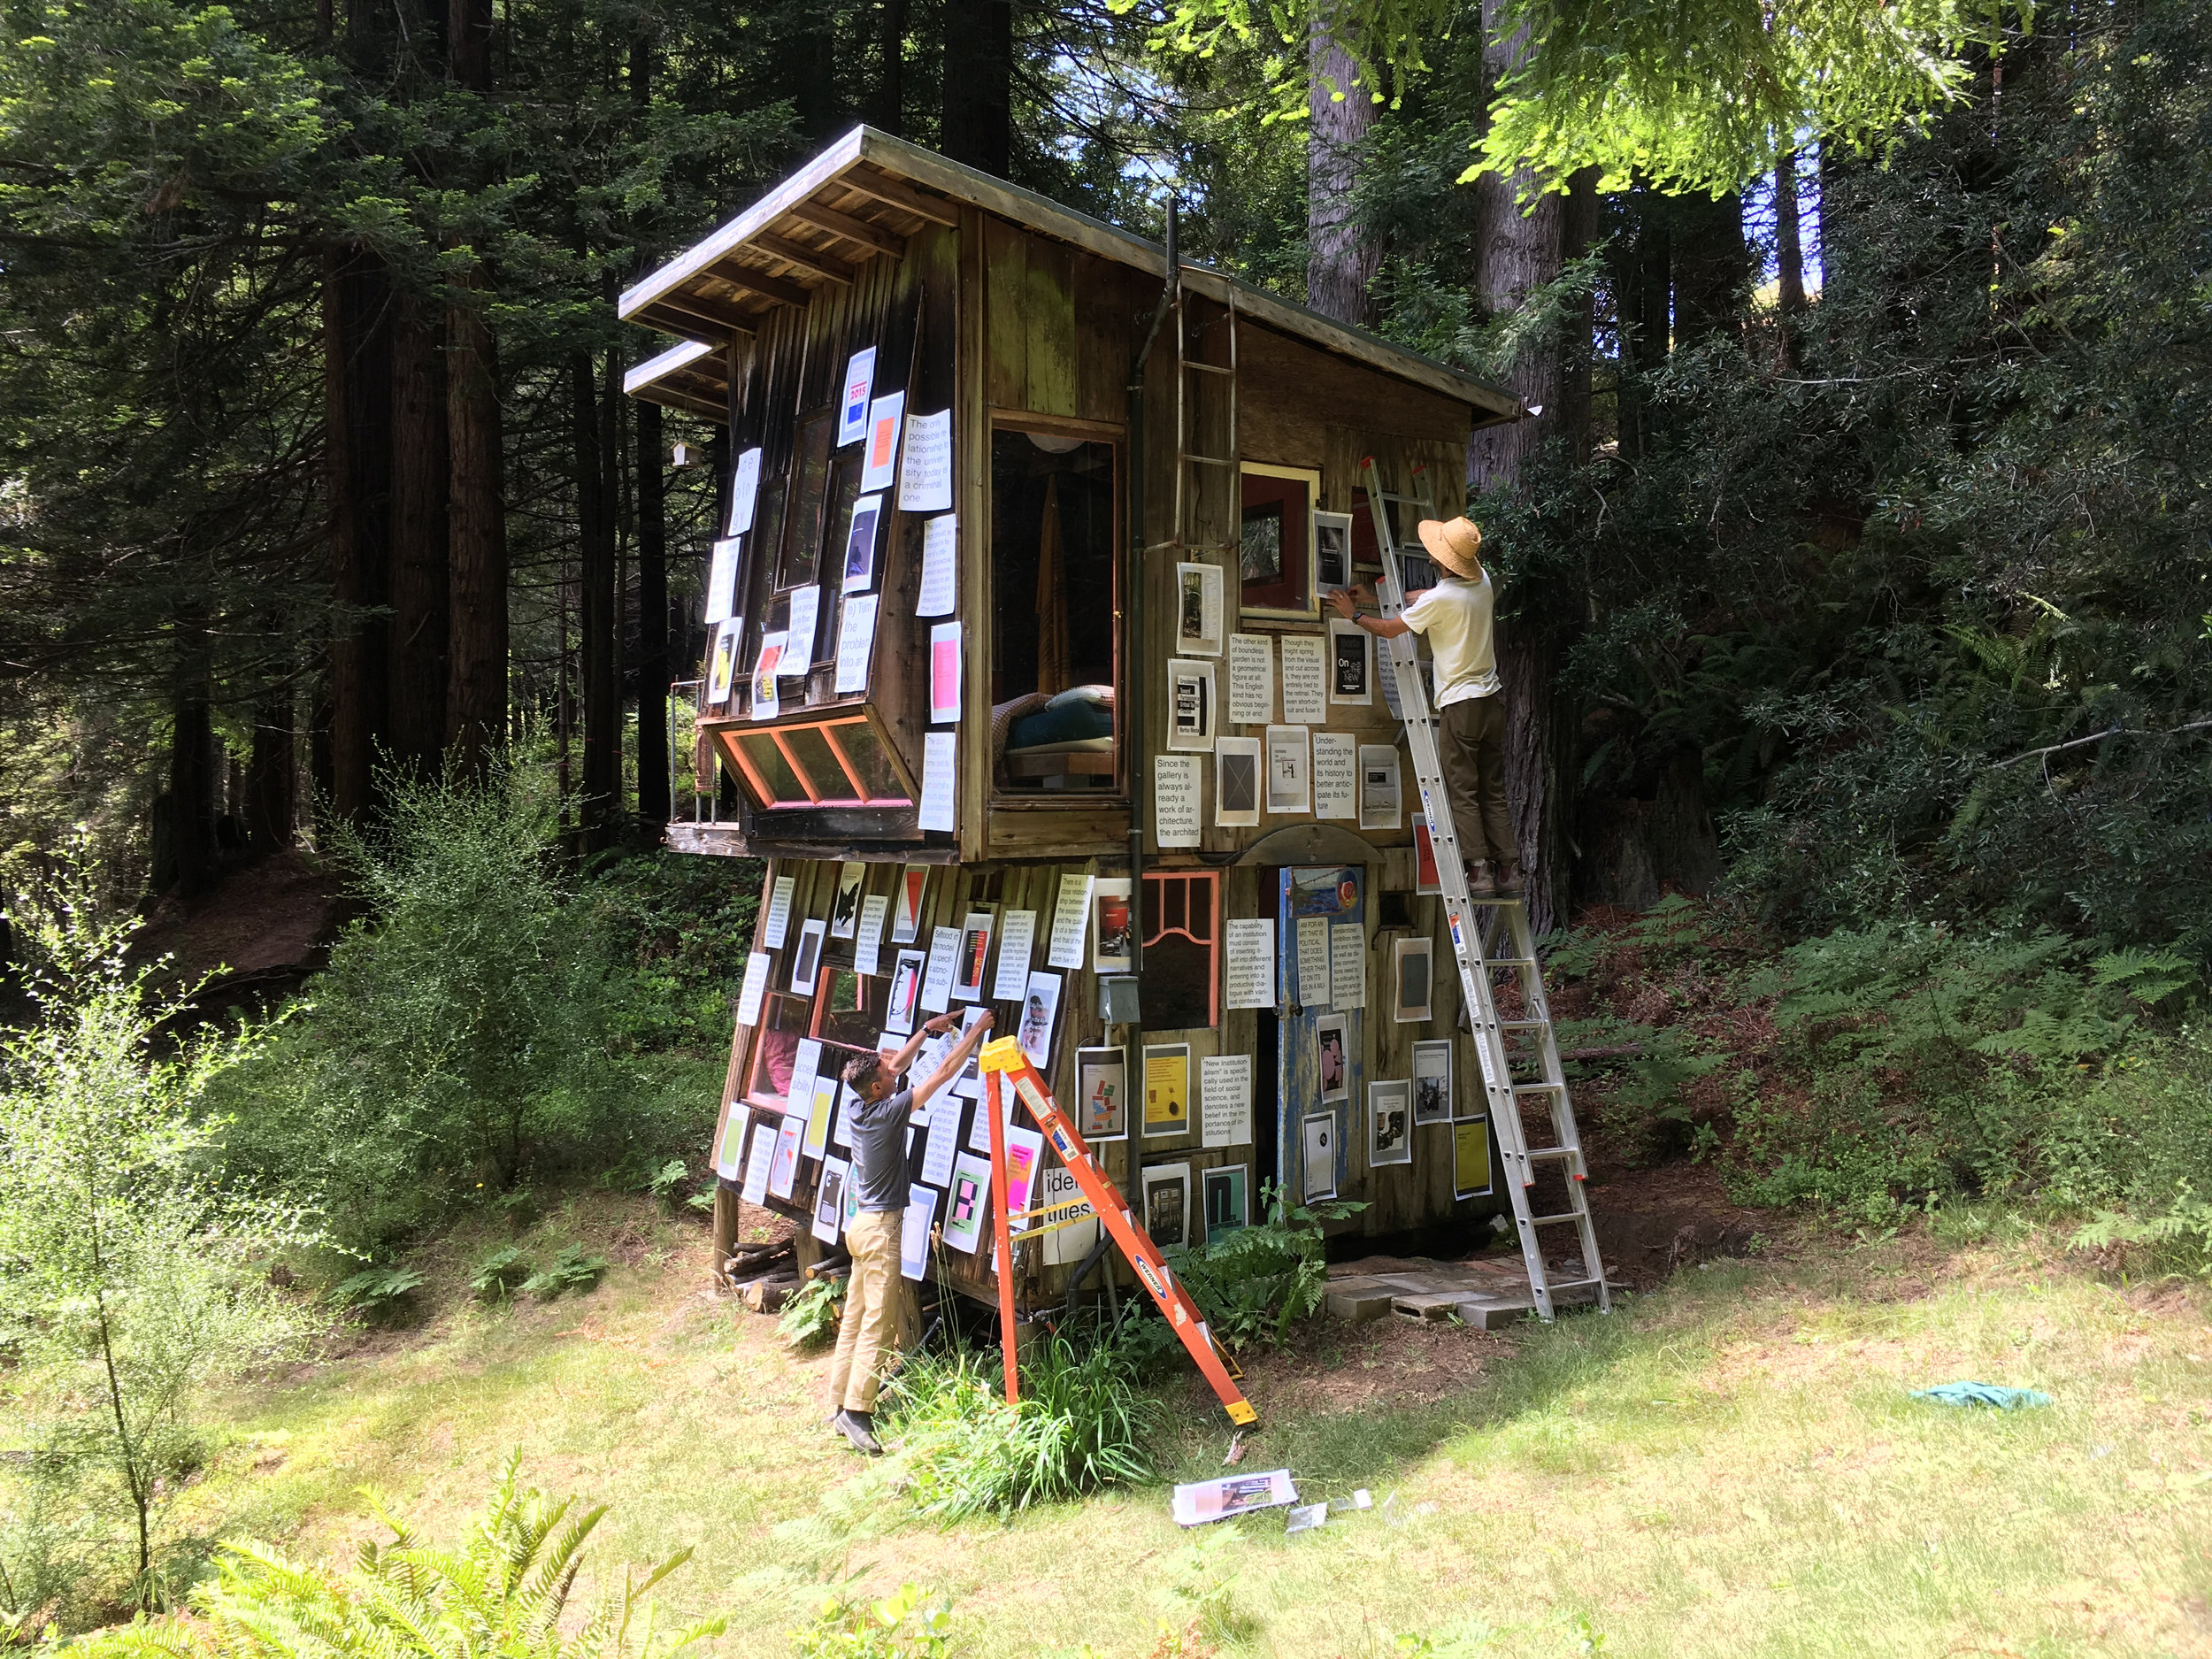 Companion Planting . Module: Institutions, led by Nate Padavick, Calvin, Rocchio, and James Voorhies. Installation of posters of photographs of books and related quotes reflecting modes of visionary challenges to institution practice. River Cabin, Salmon Creek Farm, June 9, 2018.